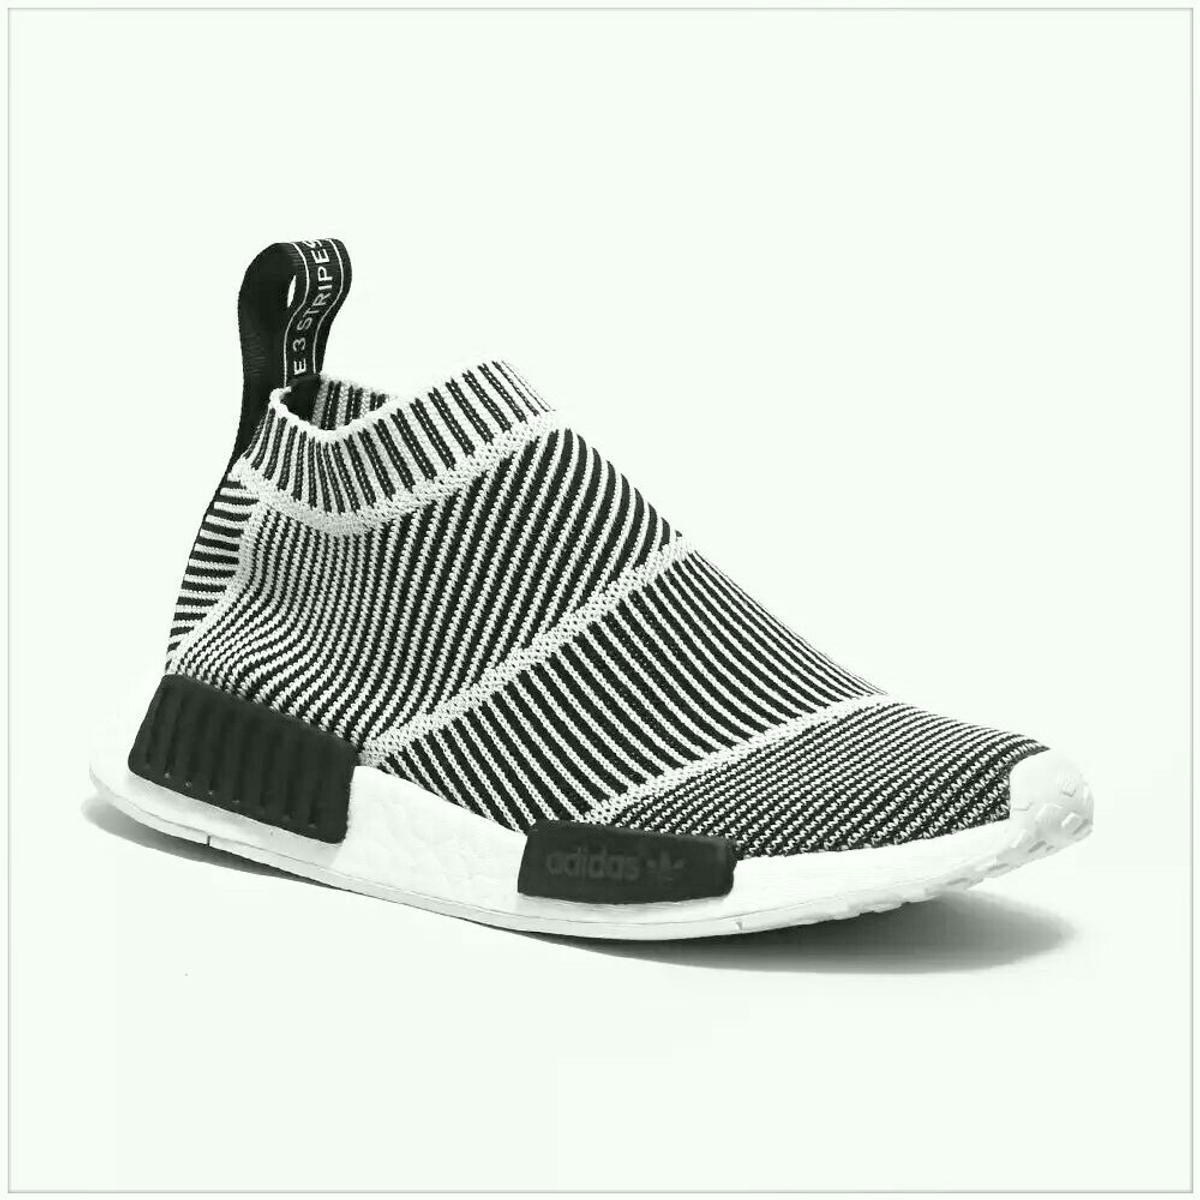 low priced 6d418 48864 100% Authentic BNIB Adidas NMD City Sock PK in CR0 London ...